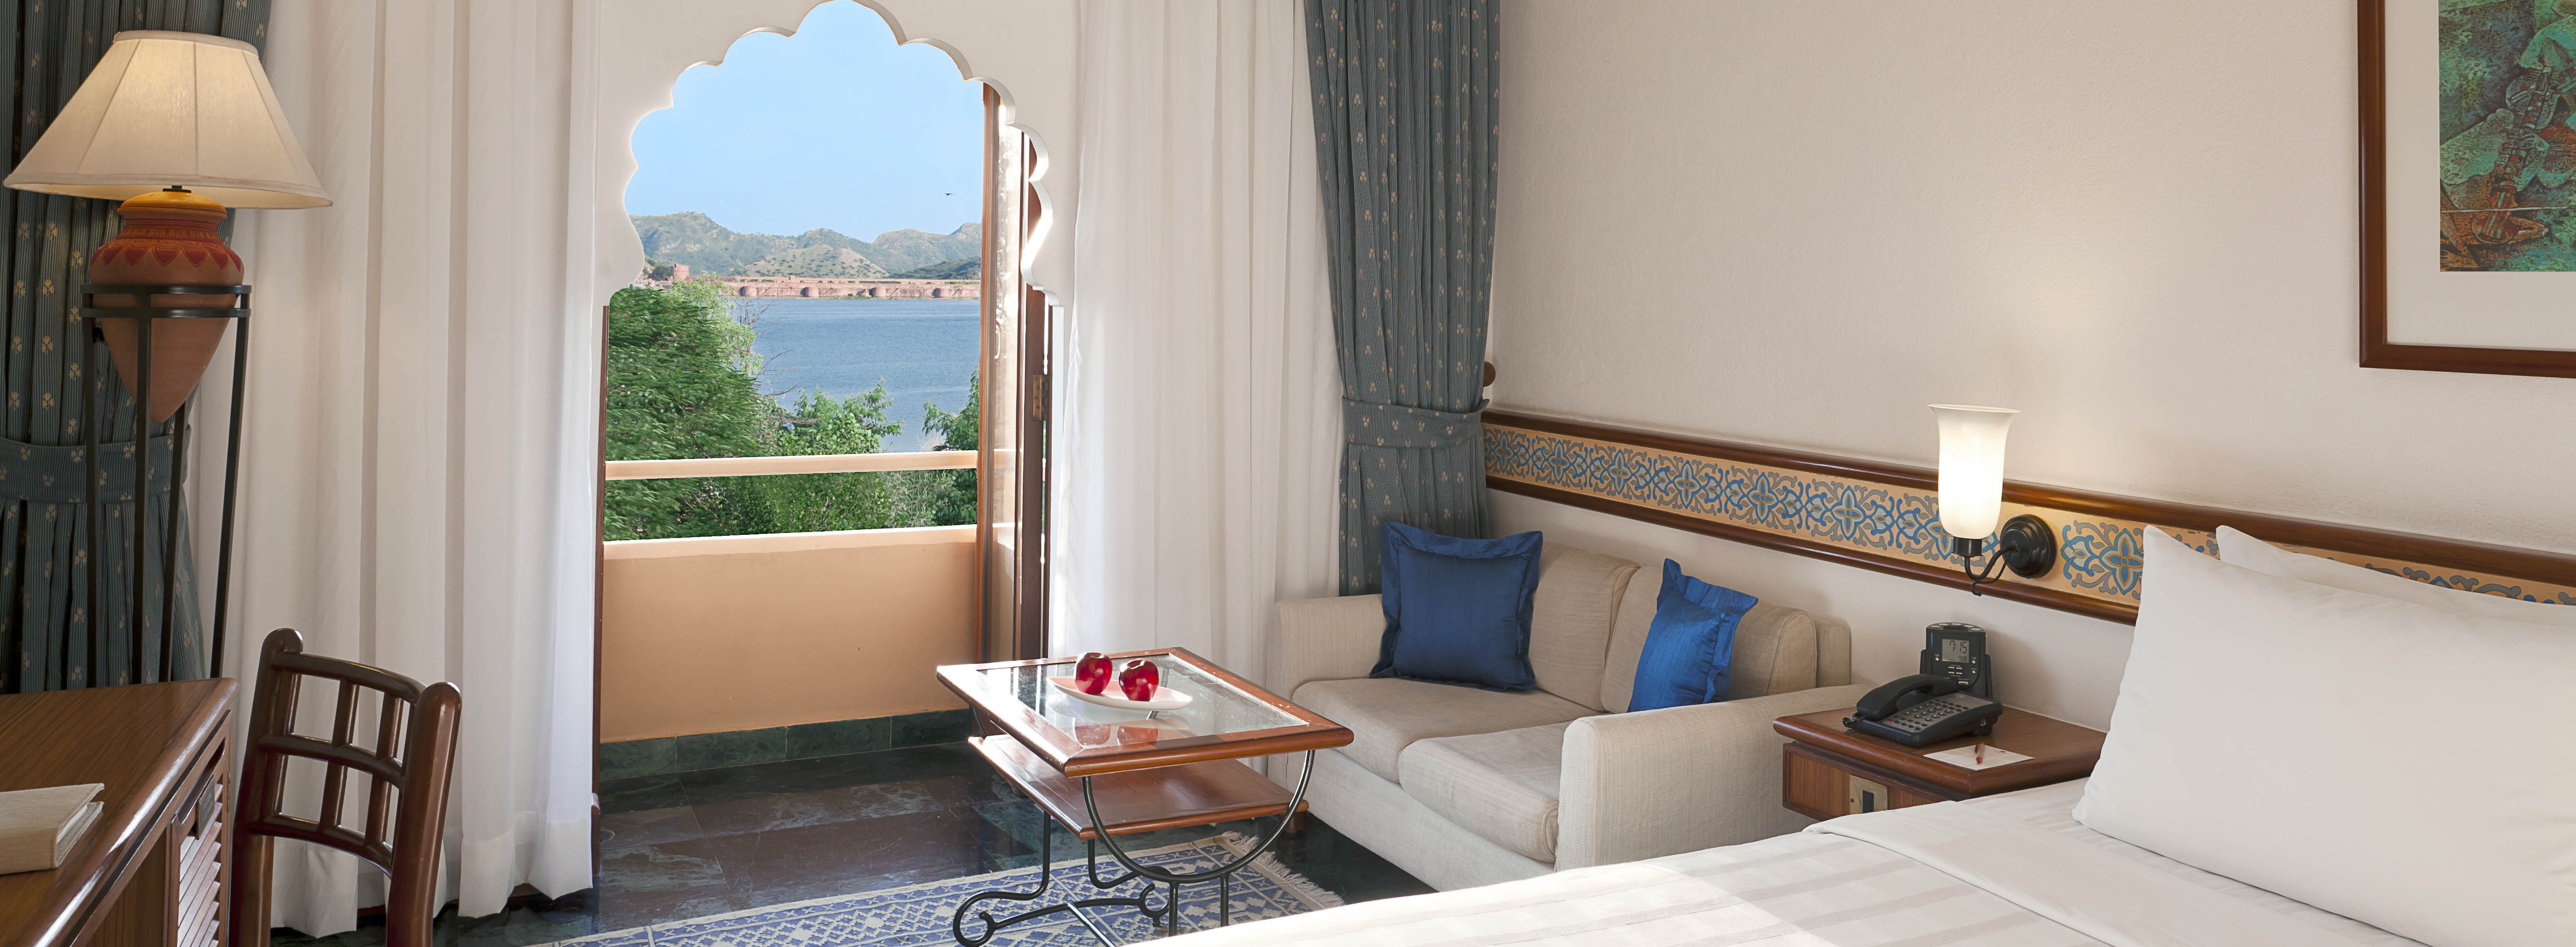 lake-view-room-trident-jaipur